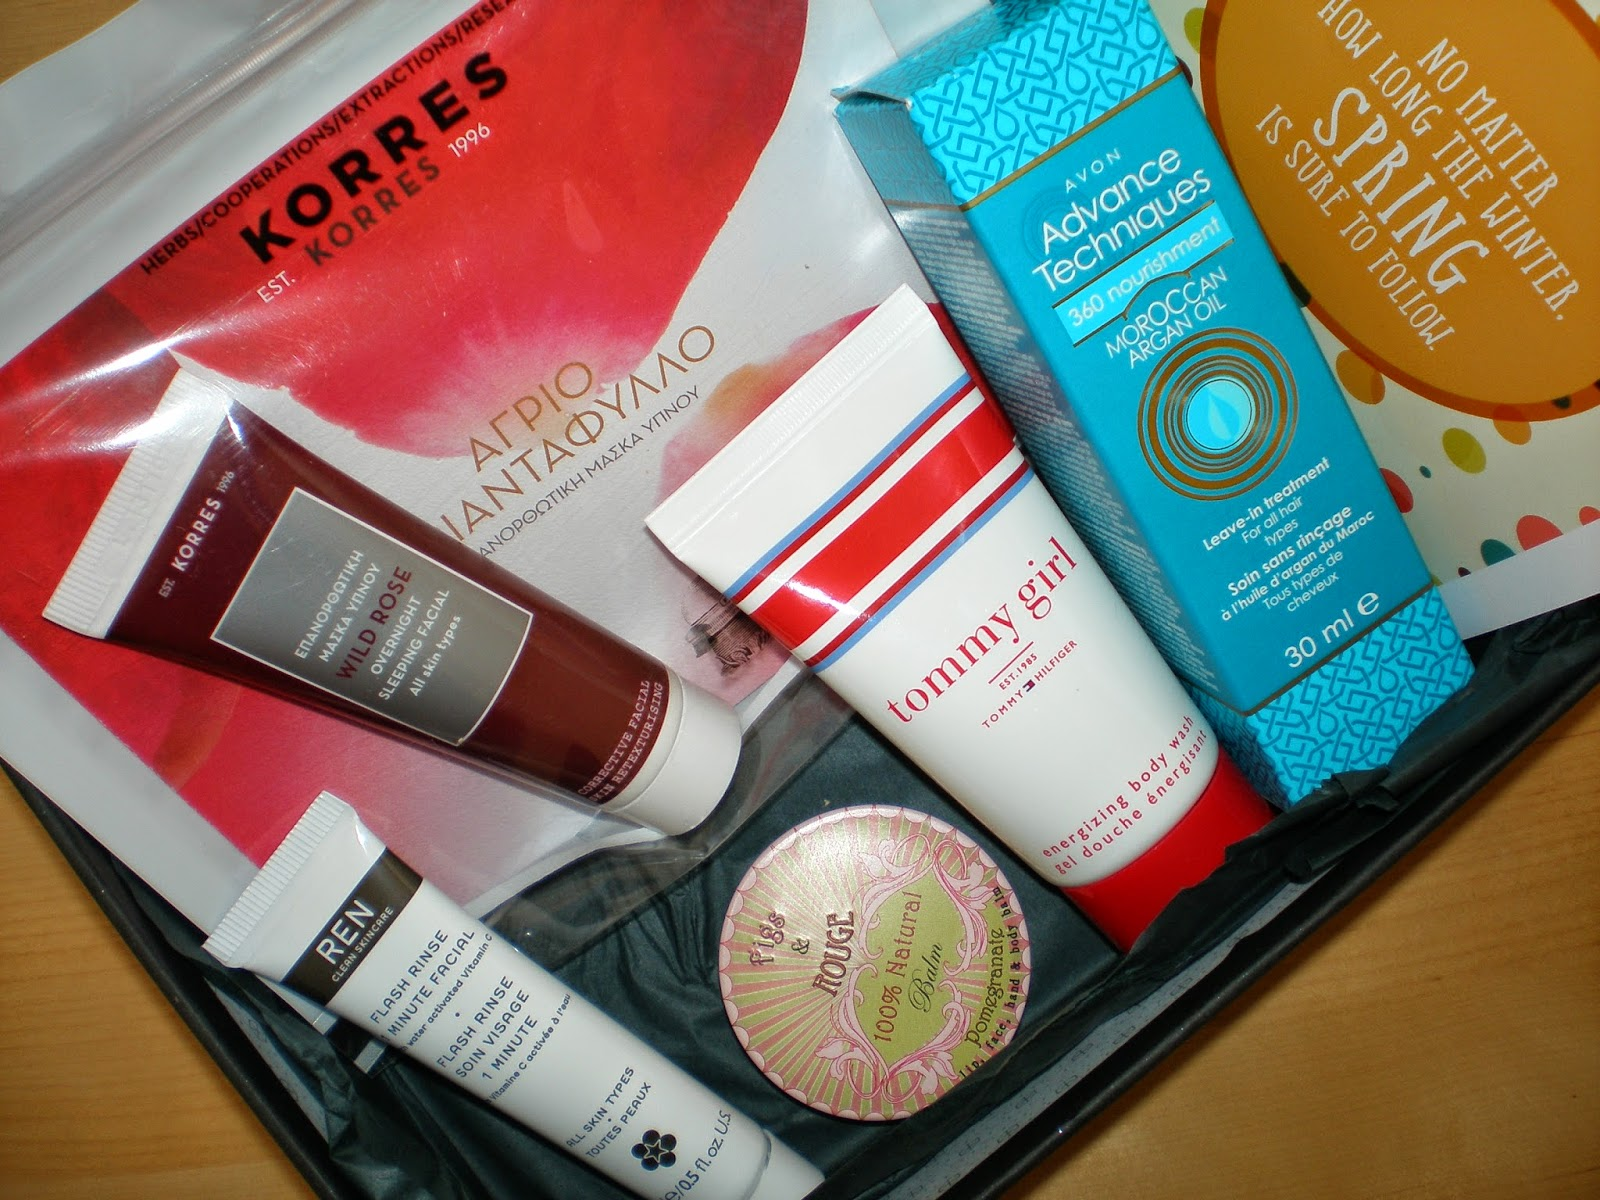 Glowbox April 2015 beauty box